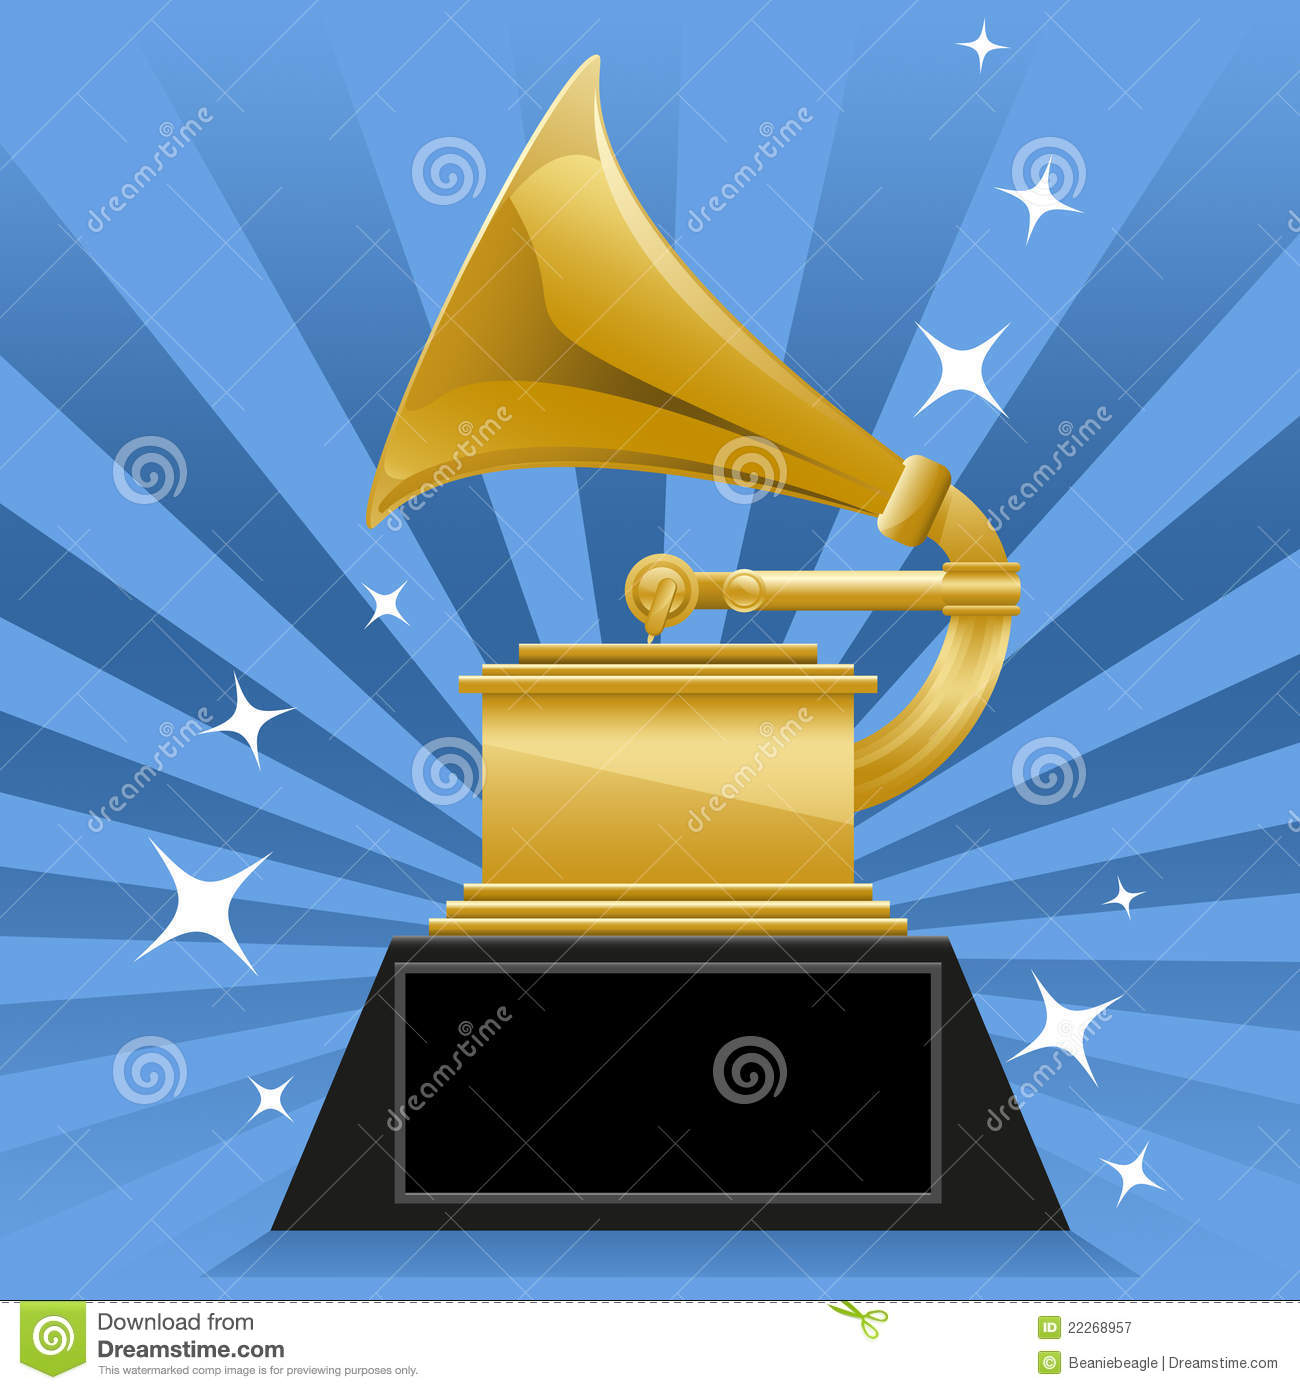 Royalty Free Stock Photography Grammy Award Image22268957 together with Grammy Awards 2013 Best Red Carpet Bridal Makeup Hair furthermore Whos Next Egot further Grammy awards besides Cornelius peter. on grammy trophy